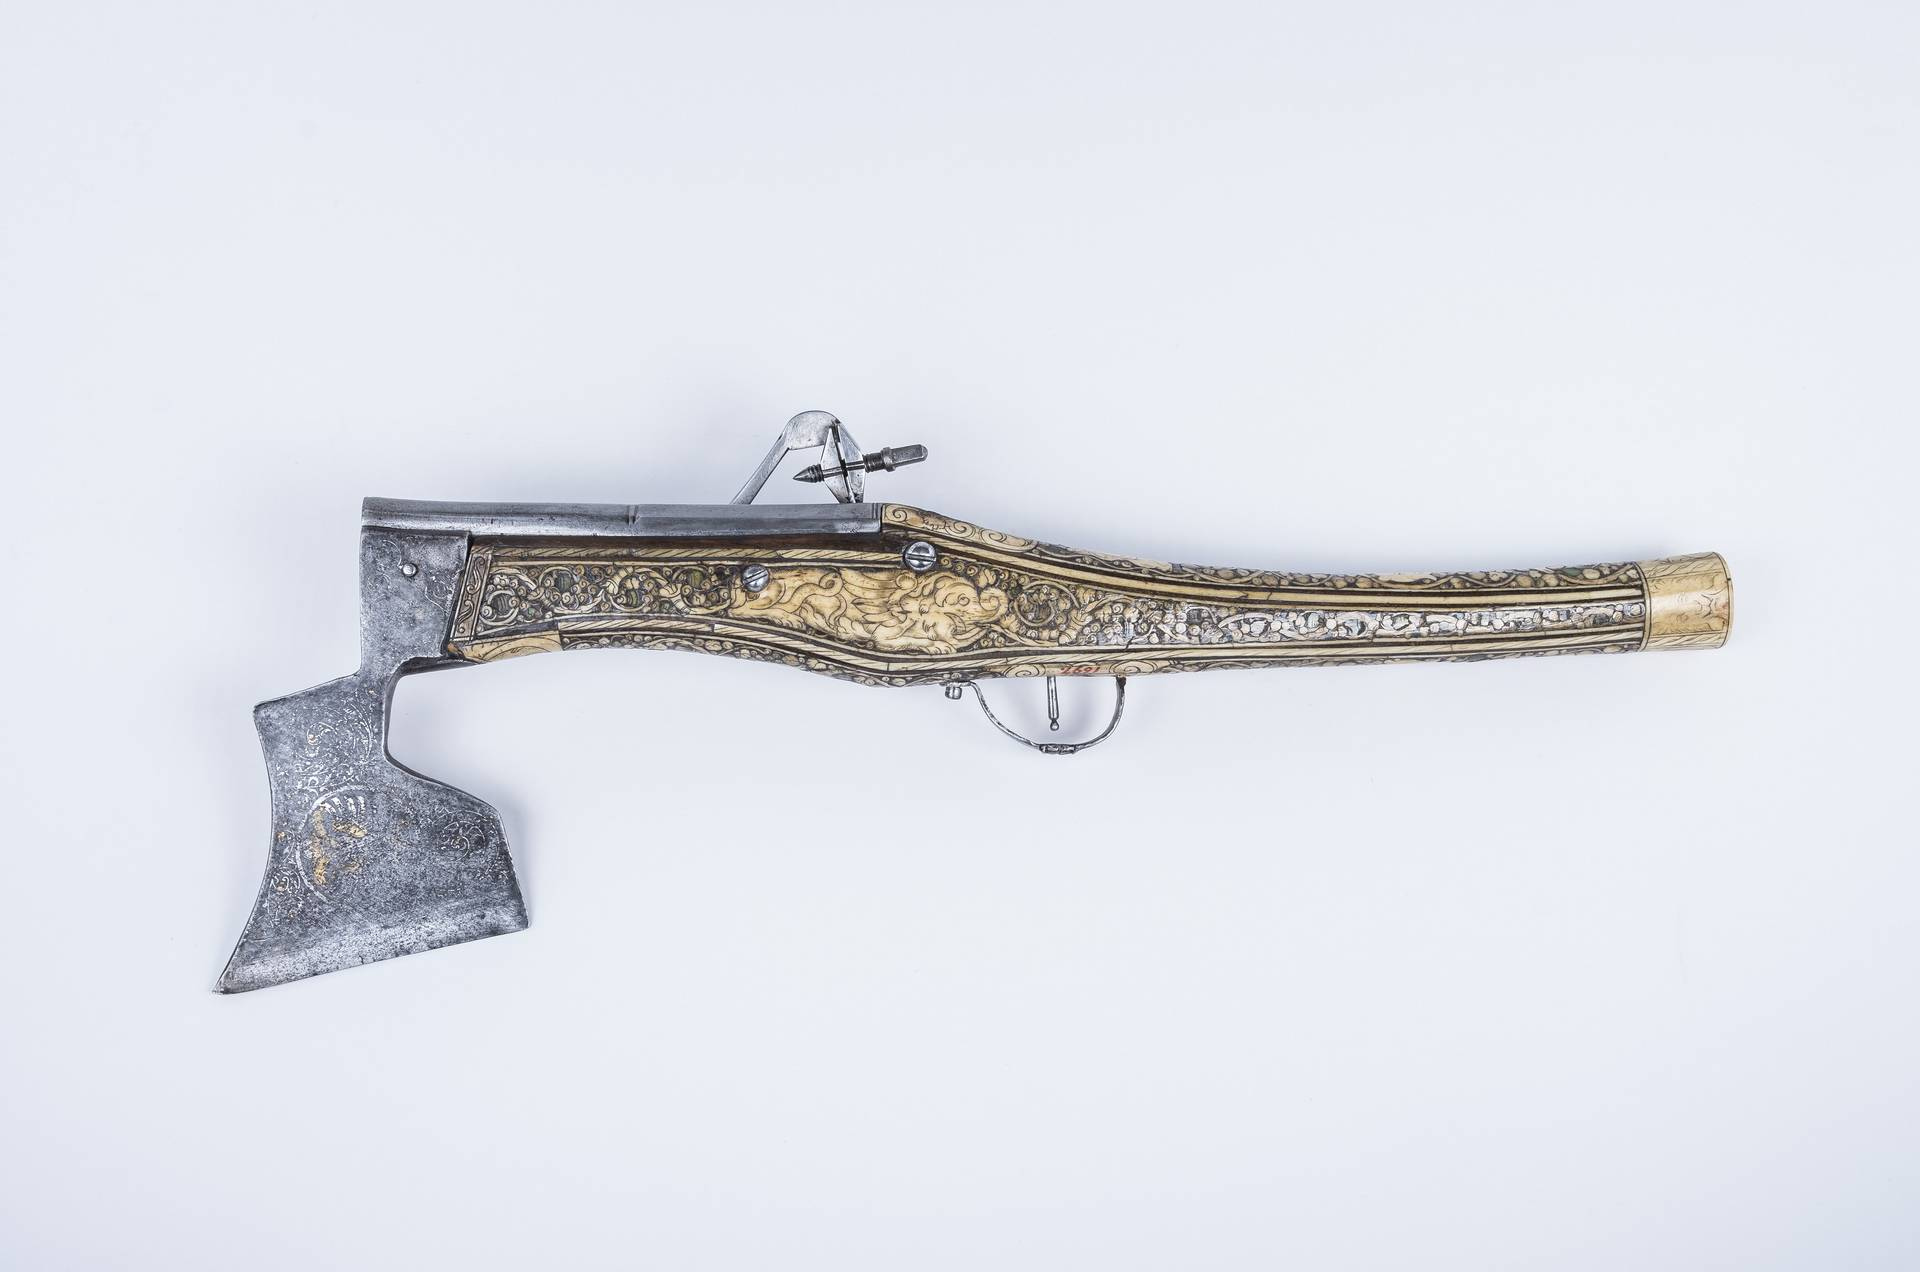 Wheel-lock pistol with pick, wheel lock: Suhl (Germany) or Salzburg, wooden shaft with bone inlays: probably southern Adriatic region, 1st half 17th c., inv. no. WA 4217